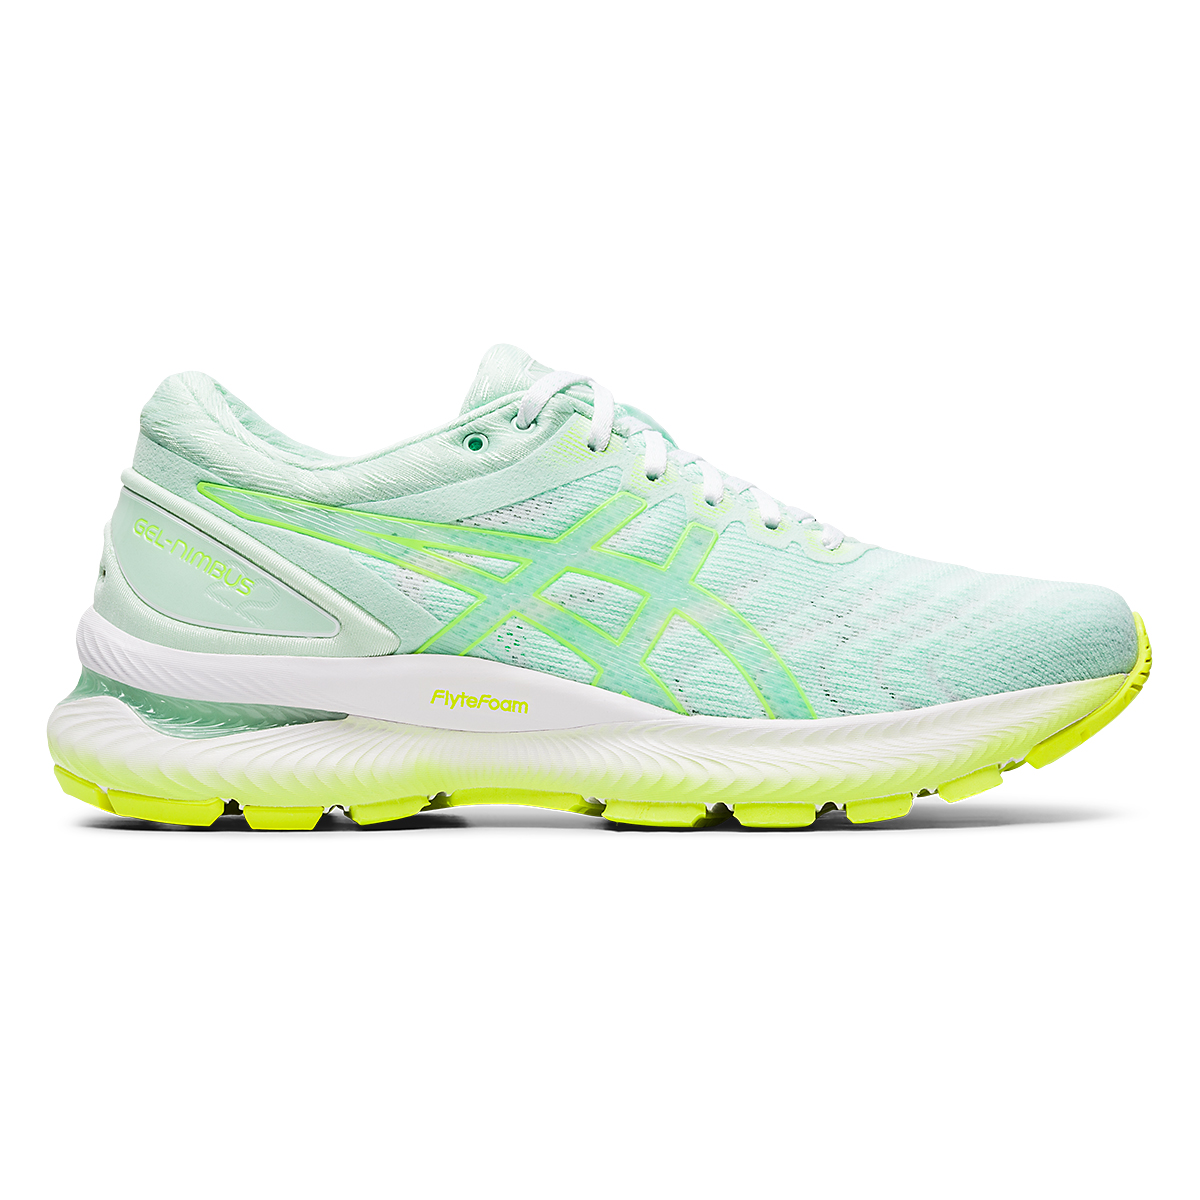 Women's Asics GEL-Nimbus 22 Modern Tokyo Running Shoe - Color: Mint Tint/Safety Yellow - Size: 5 - Width: Regular, Mint Tint/Safety Yellow, large, image 1